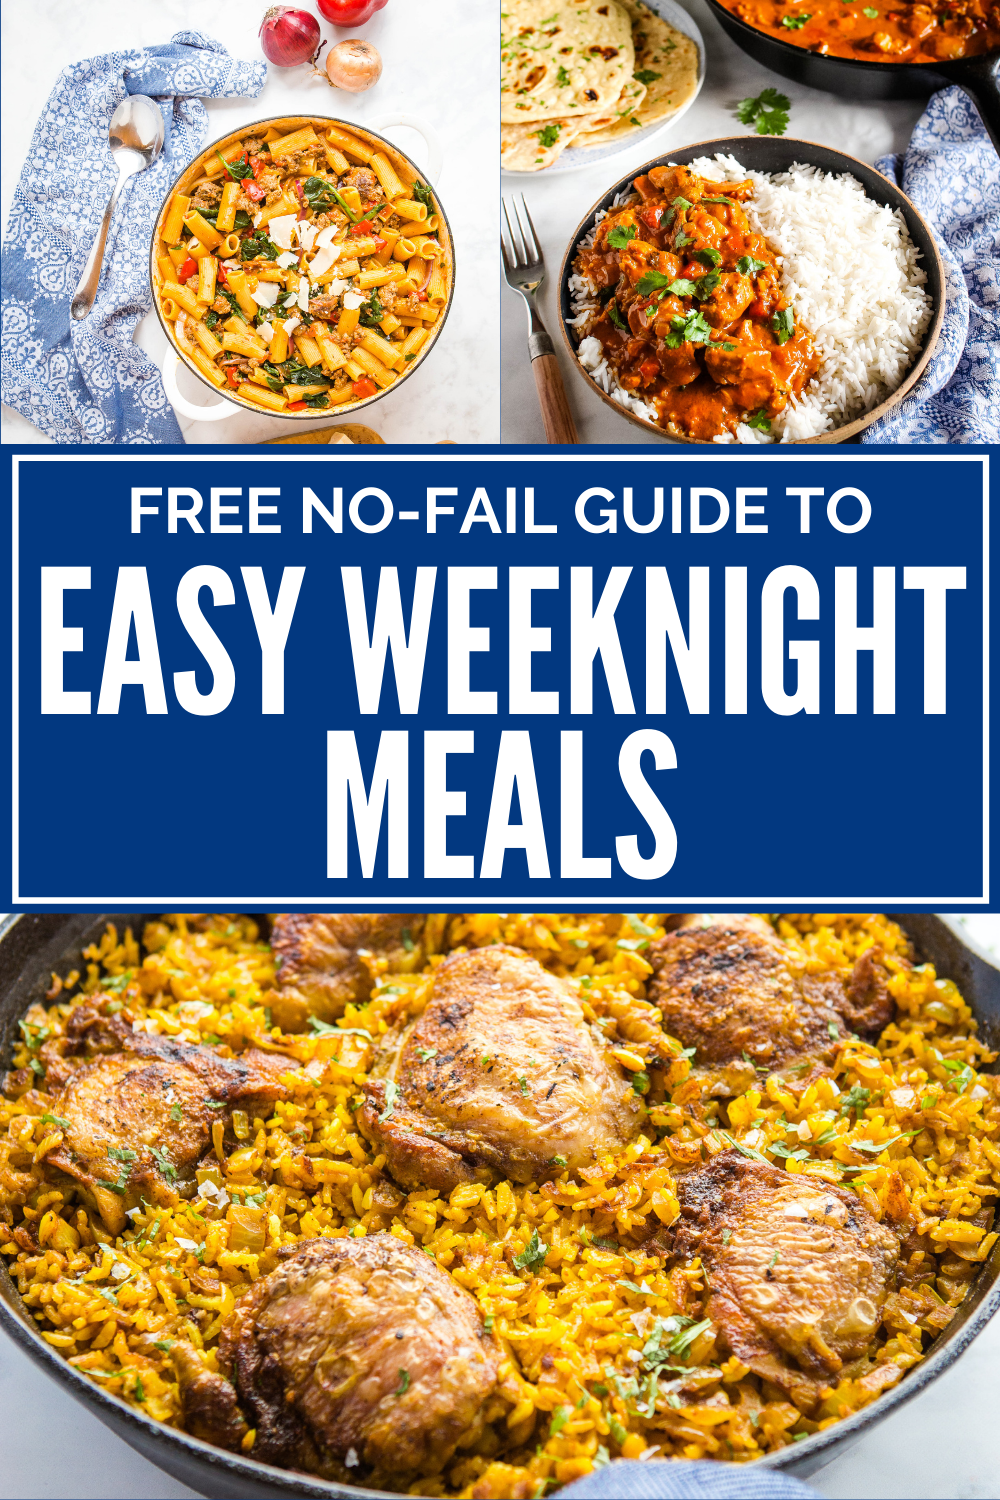 Free Easy Weeknight Meals E-Course! Recipes and Pro tips! Sign up today at thebusybaker.ca! #recipes #freecourse #ecourse #mealplanning #mealprep #familymeals via @busybakerblog